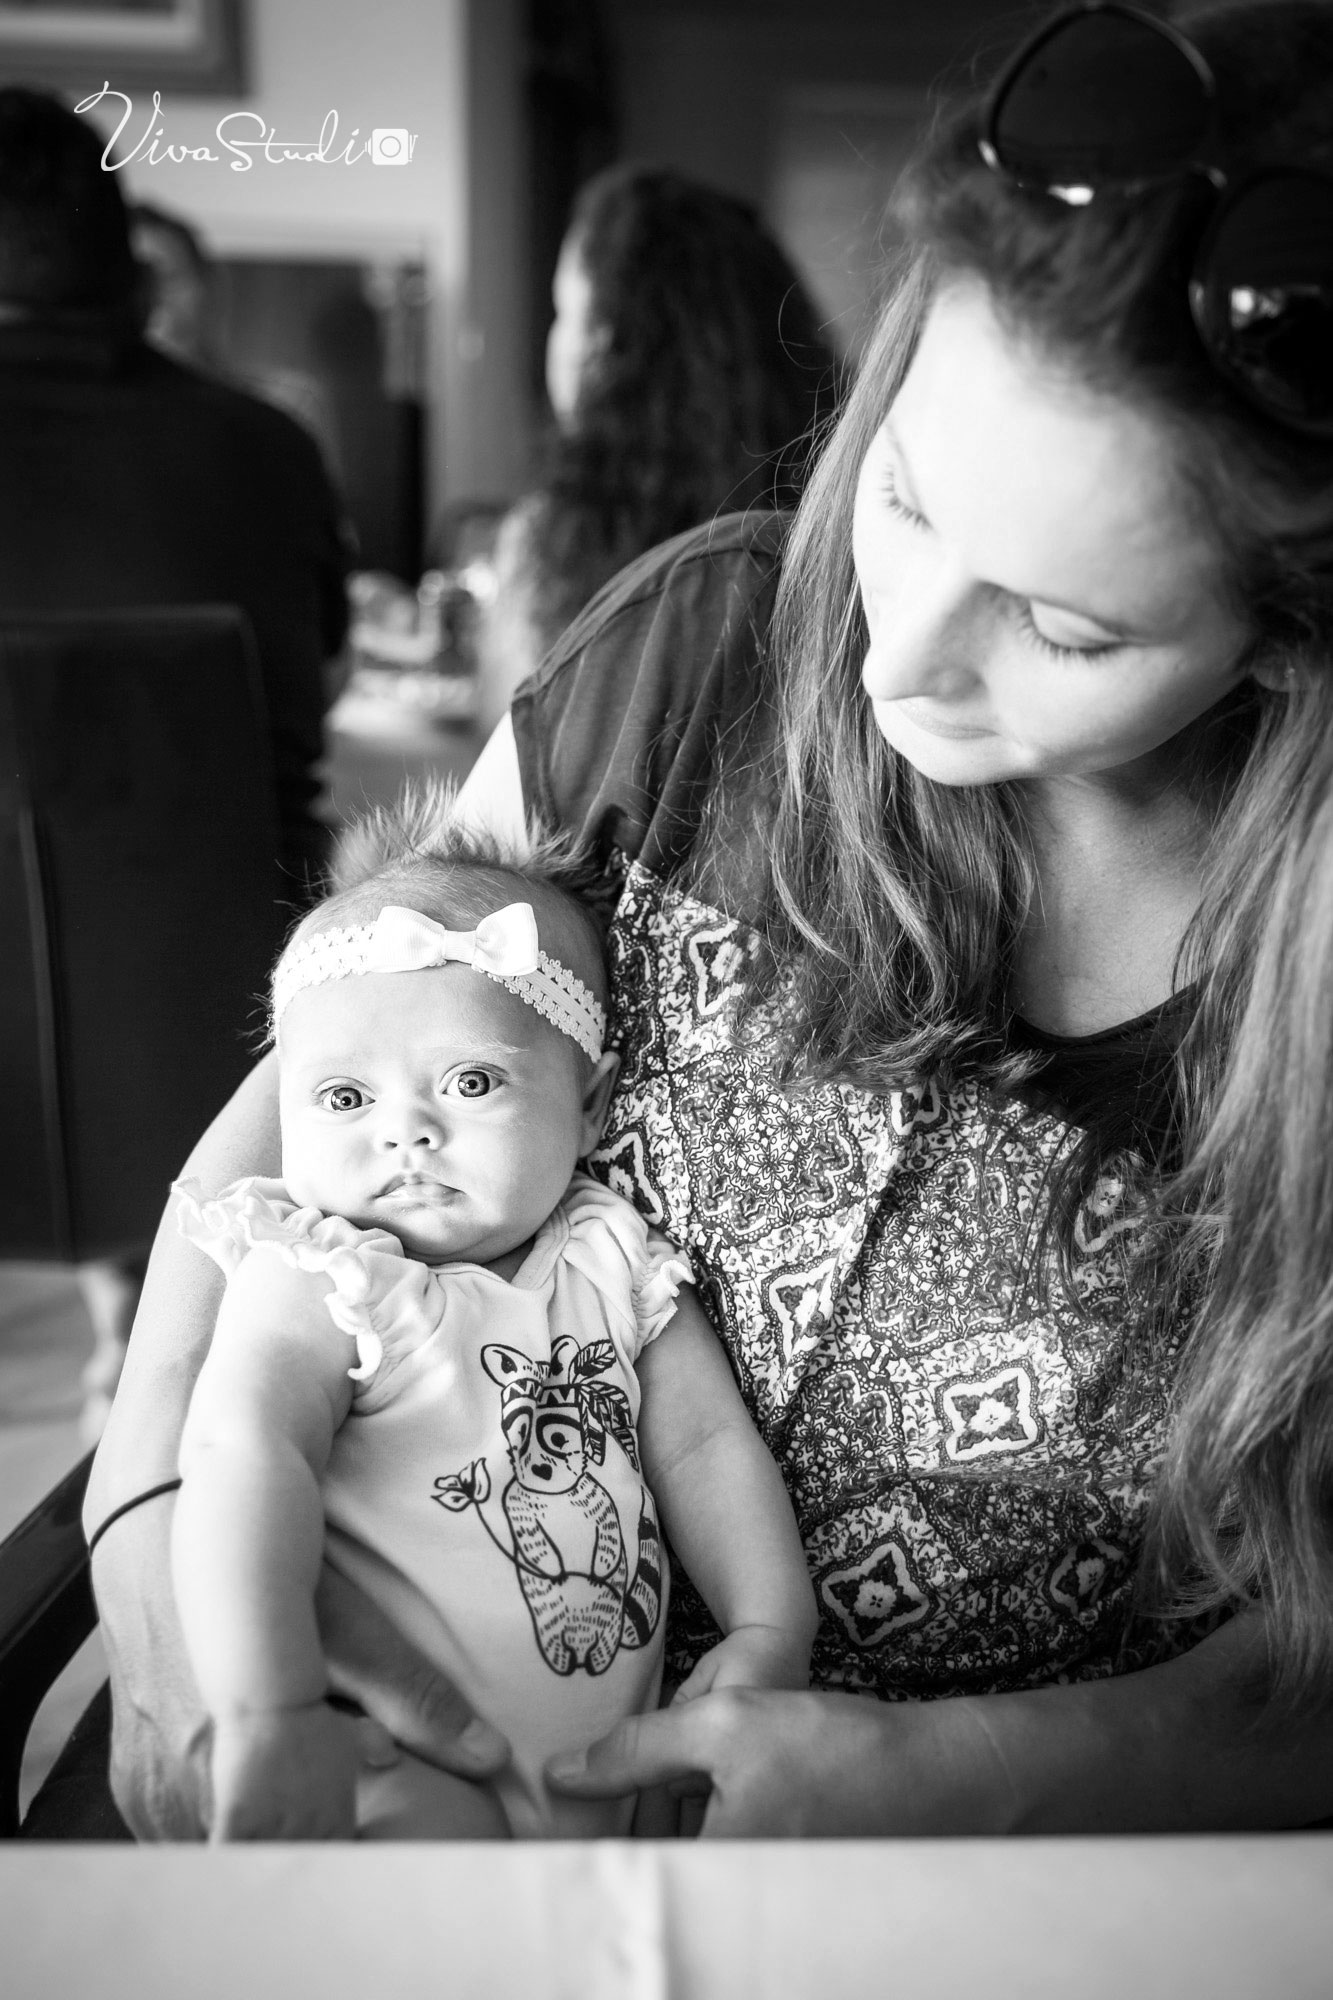 VivaStudio_Design_Photograpphy_Brisbane_Baby_Sidney_1st_Birthday_Party0182-bw